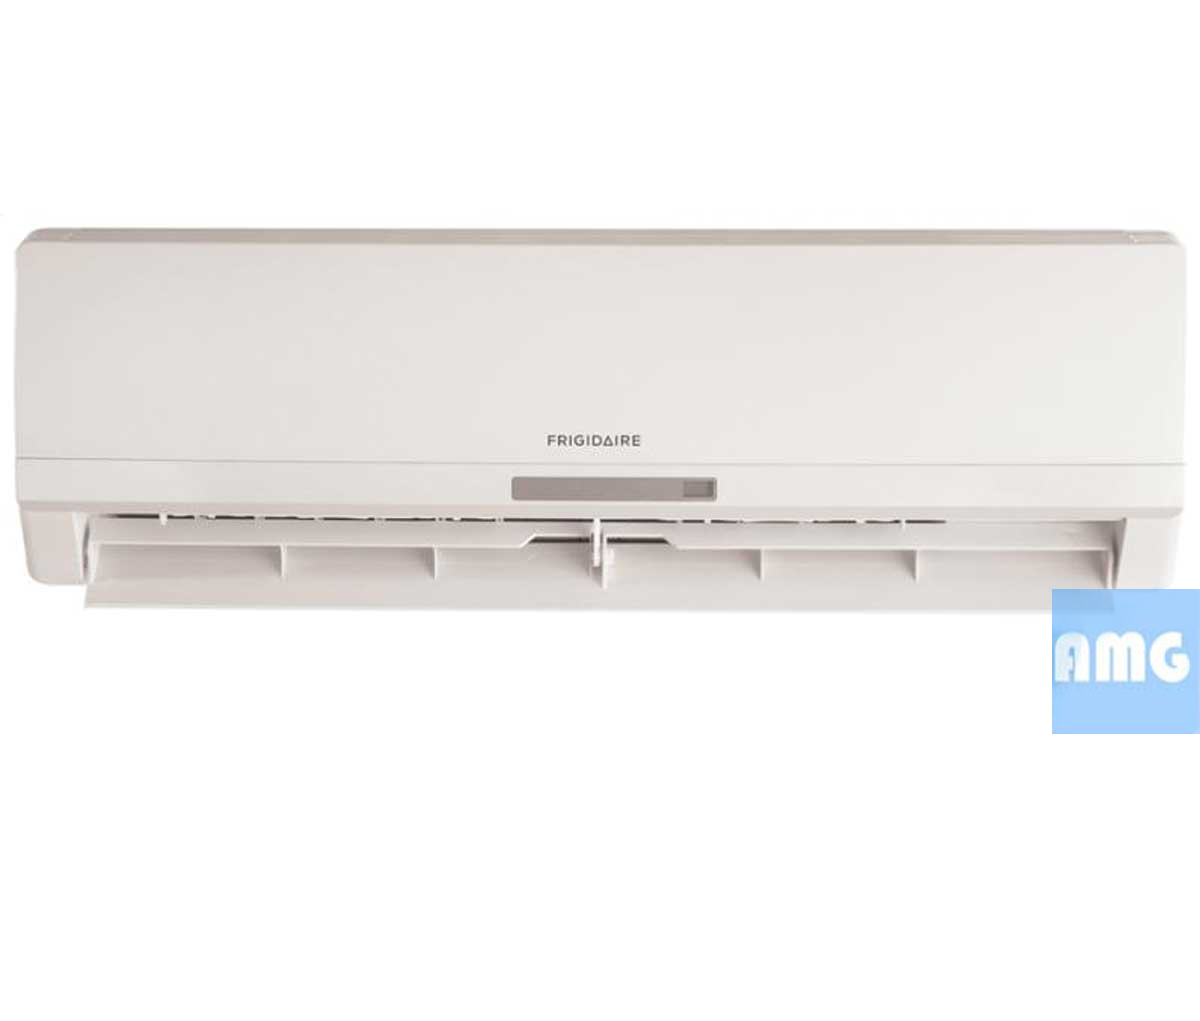 hight resolution of frigidaire ductless 9k mini split heat pump frs09pys1 front view